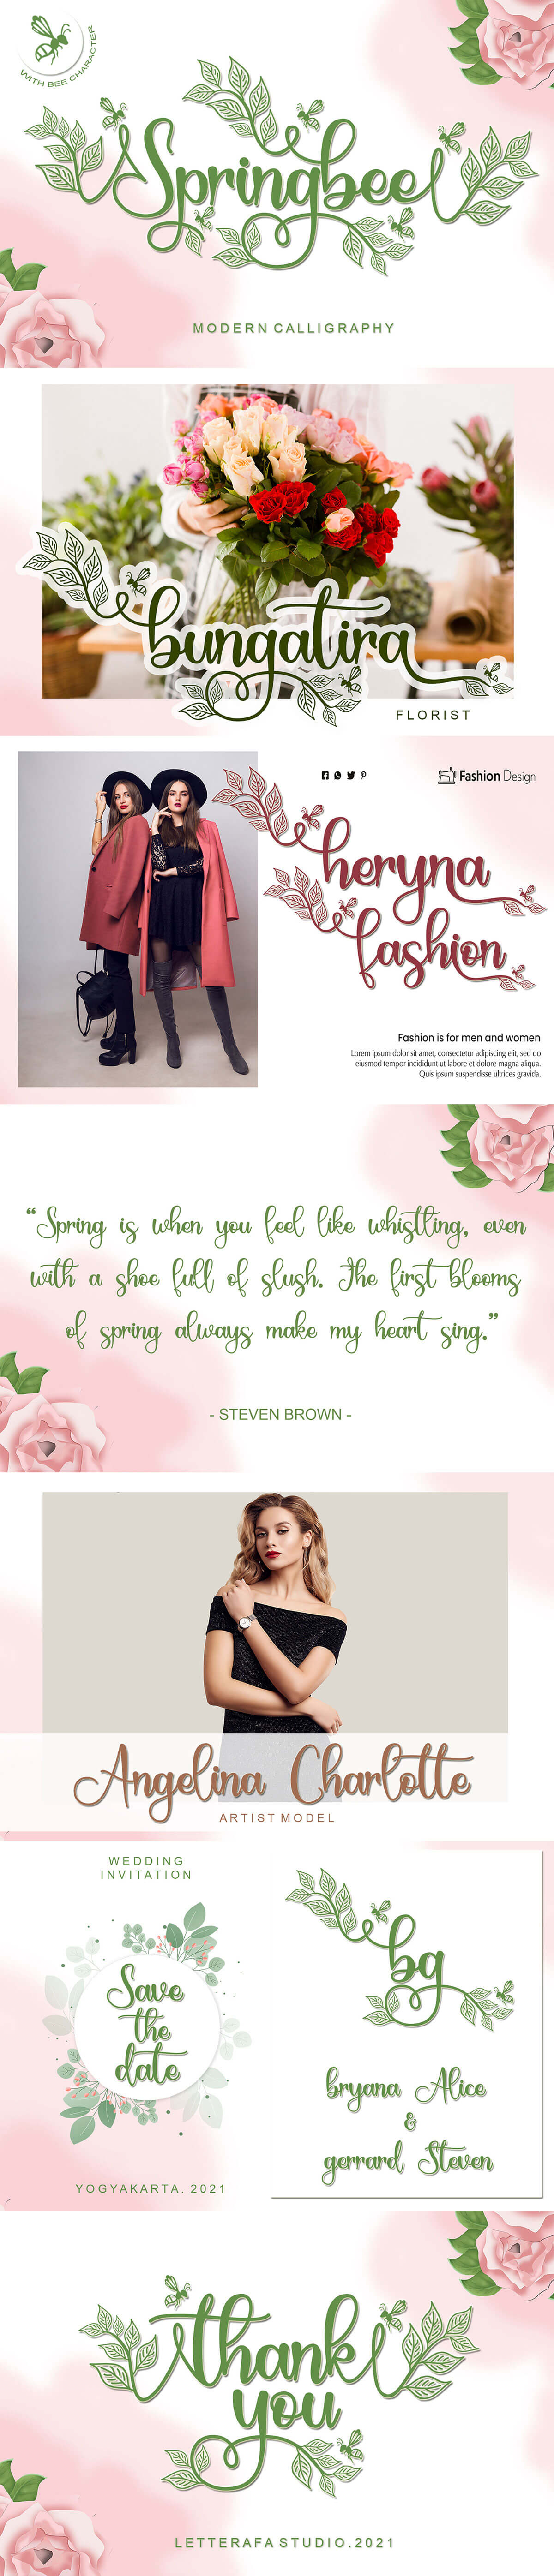 Free Springbee Calligraphy Font